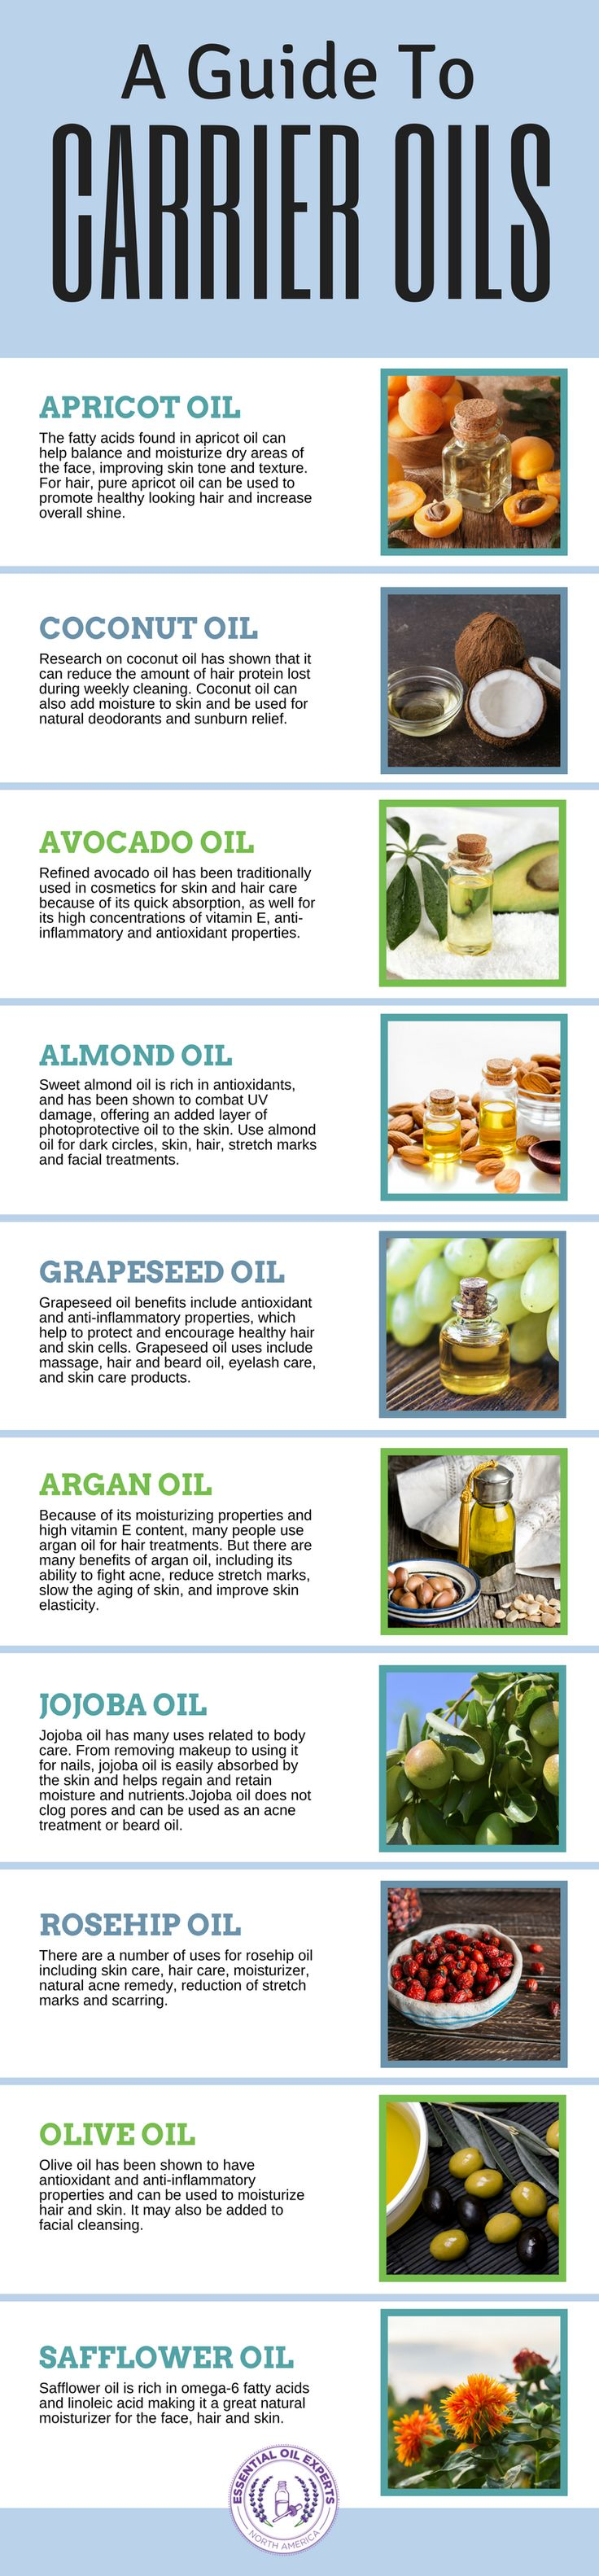 Carrier Oils for Face, Skin, and Hair | What is a Carrier Oil?